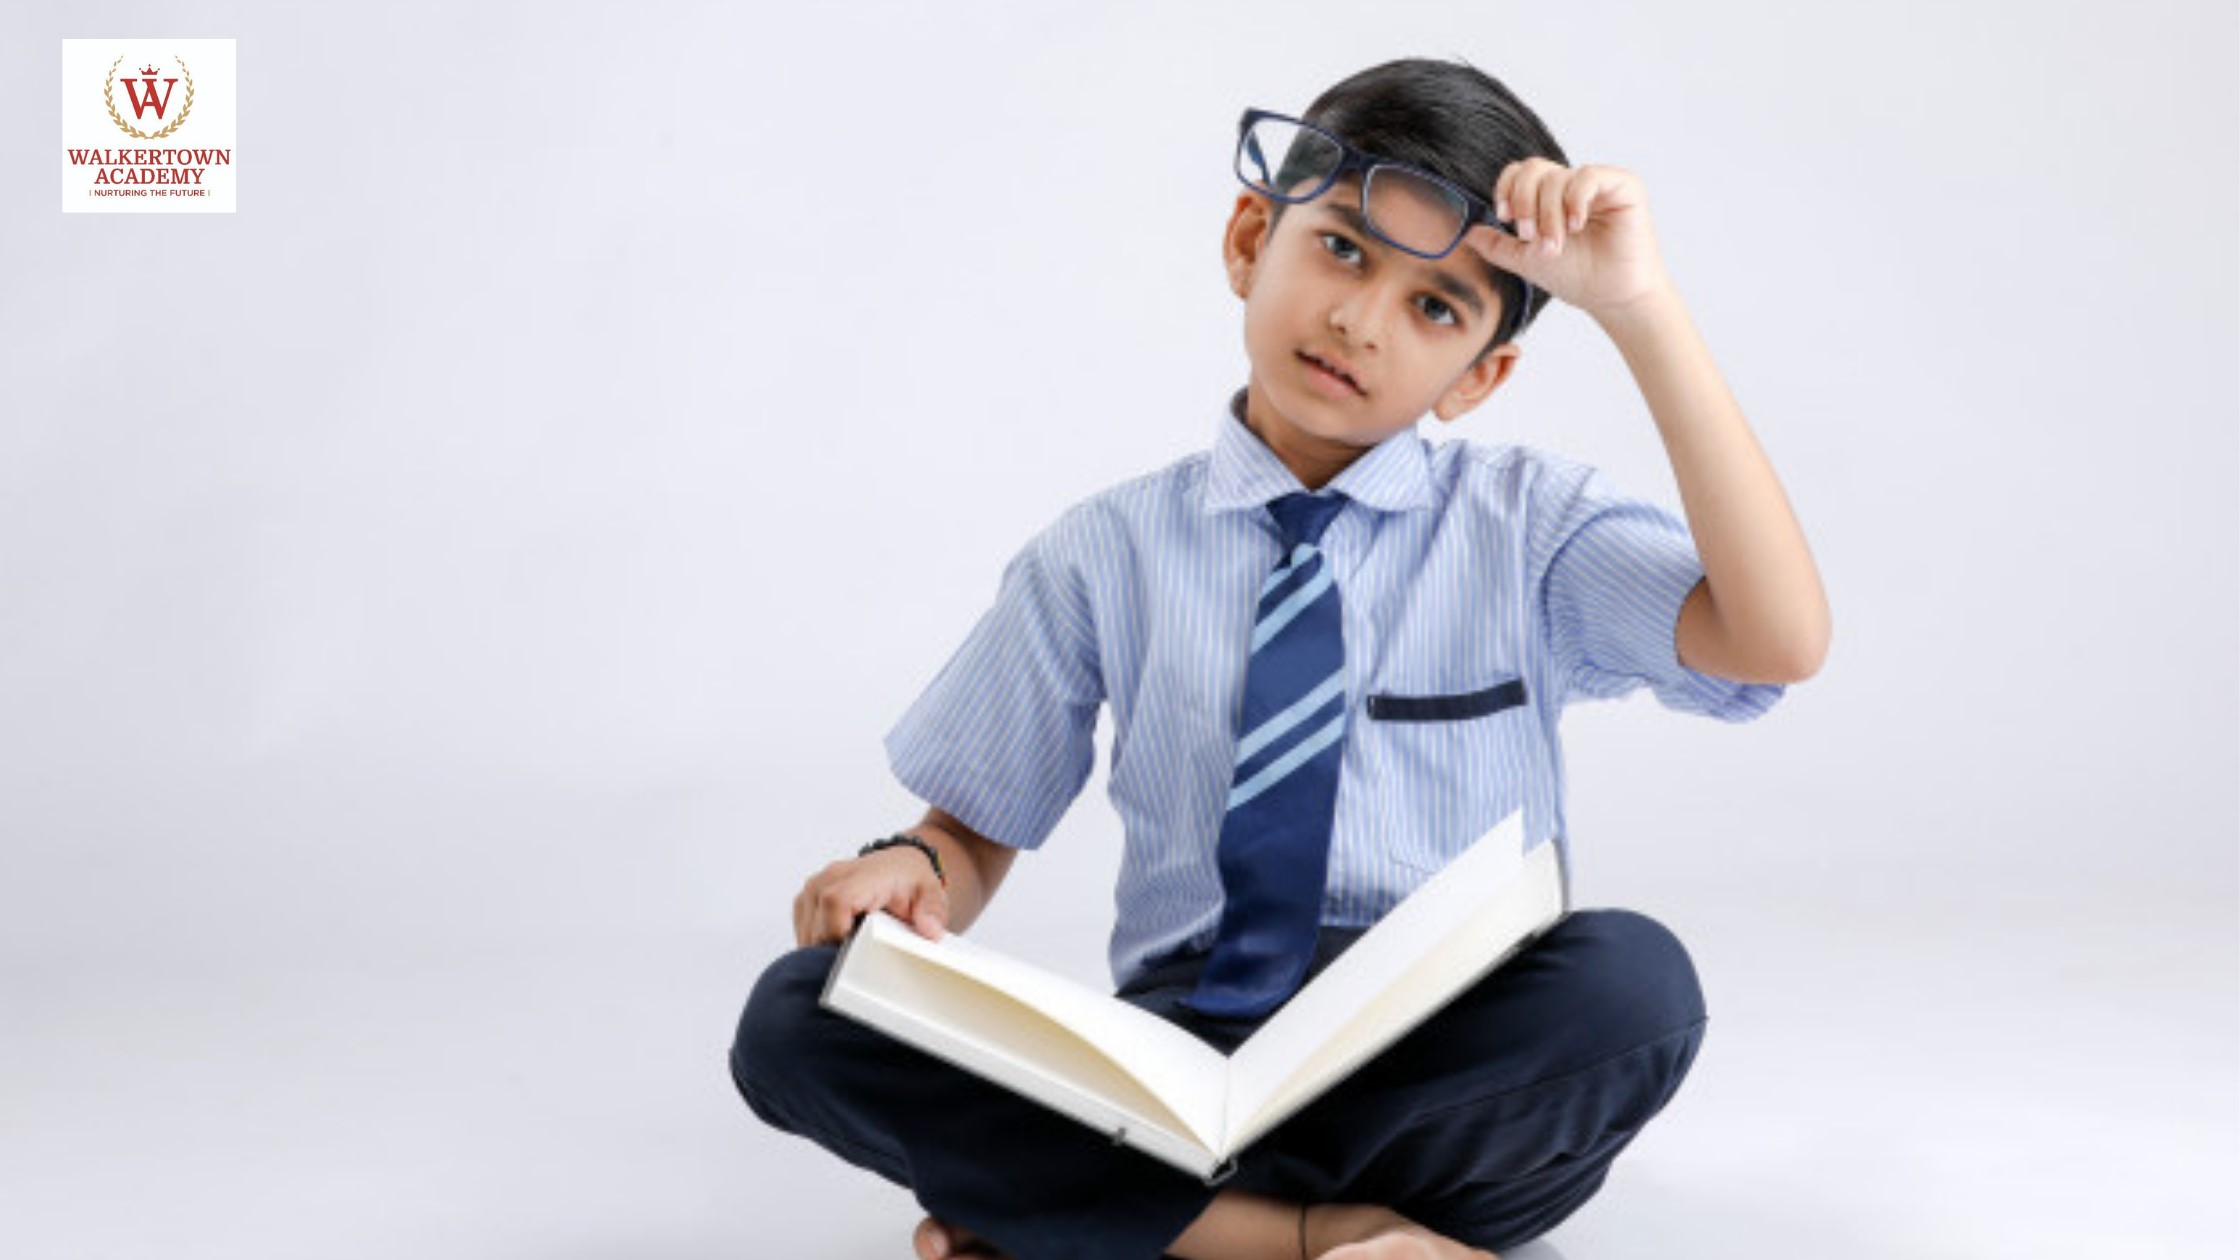 How To Choose The Right School For Your Child - Walkertown Academy